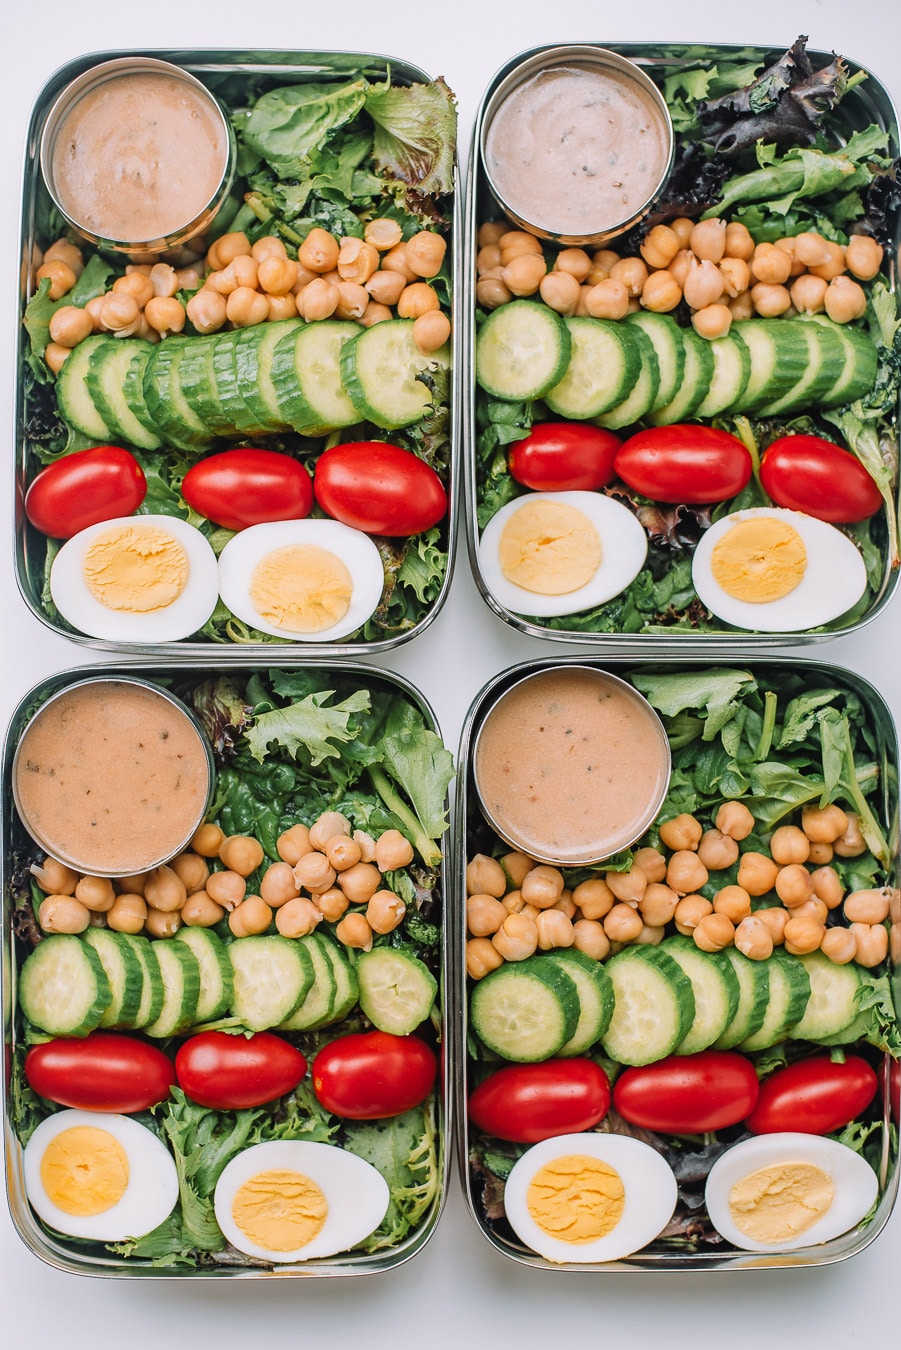 4 Bento boxes filled with mixed greems, boiled egg, grape tomatoes, mini cucumbers, chickpeas, and Drew's Organics Tahini Goddess Dressing and Marinade